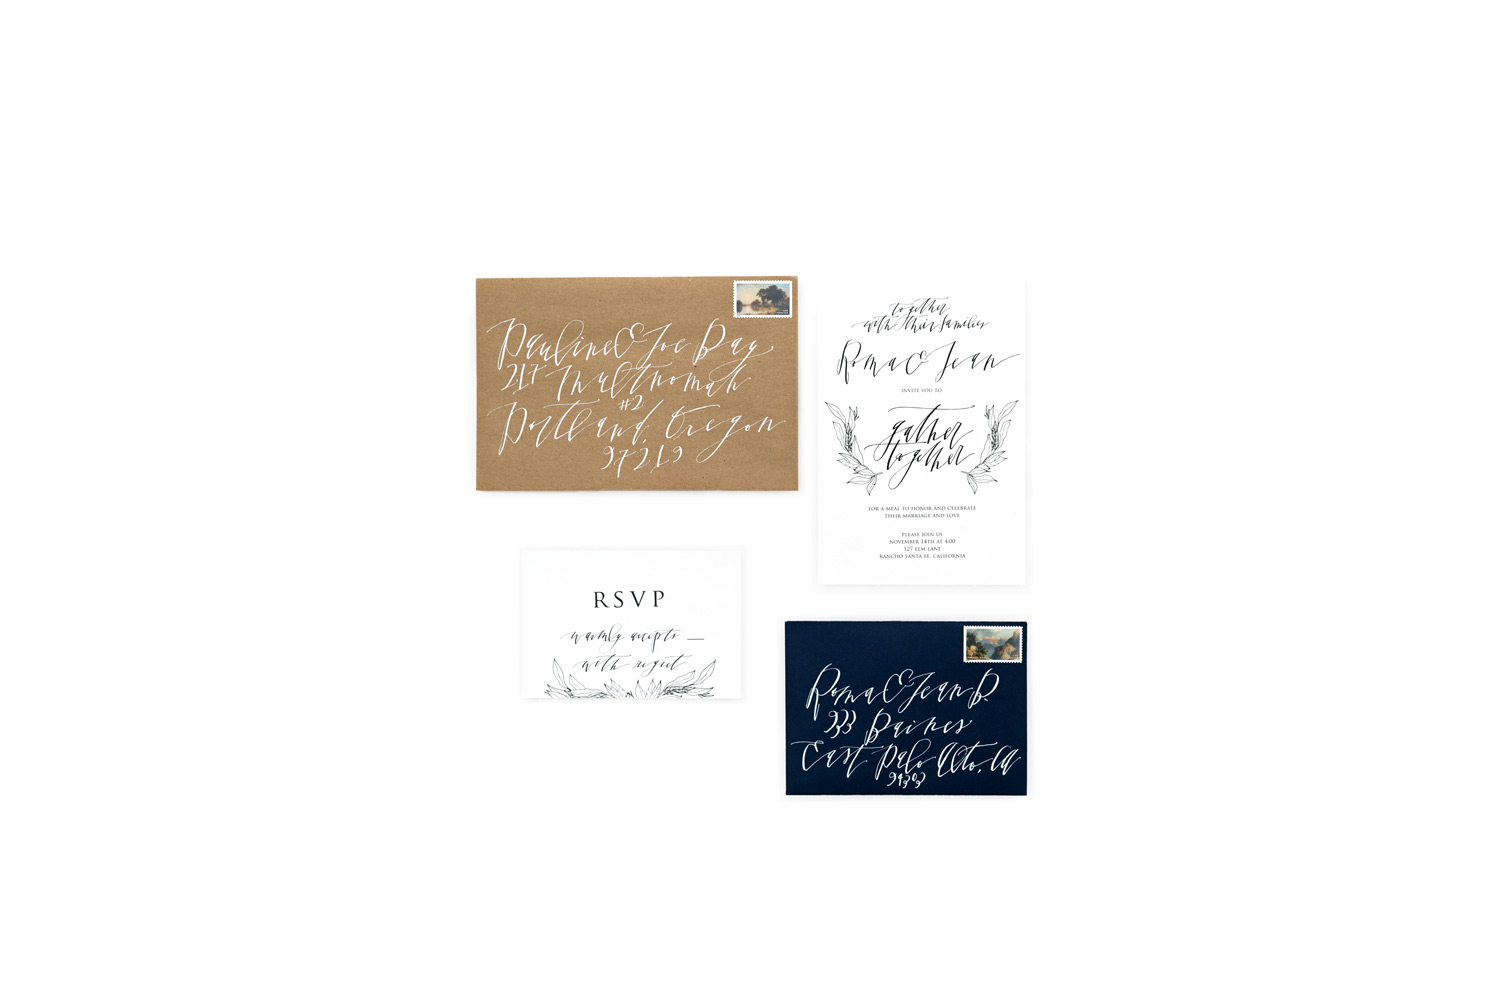 Organic white brown and navy wedding invitation suite with calligraphy by Studio Vonberg, #WeddingMinimalismProject by Cavin Elizabeth Photography